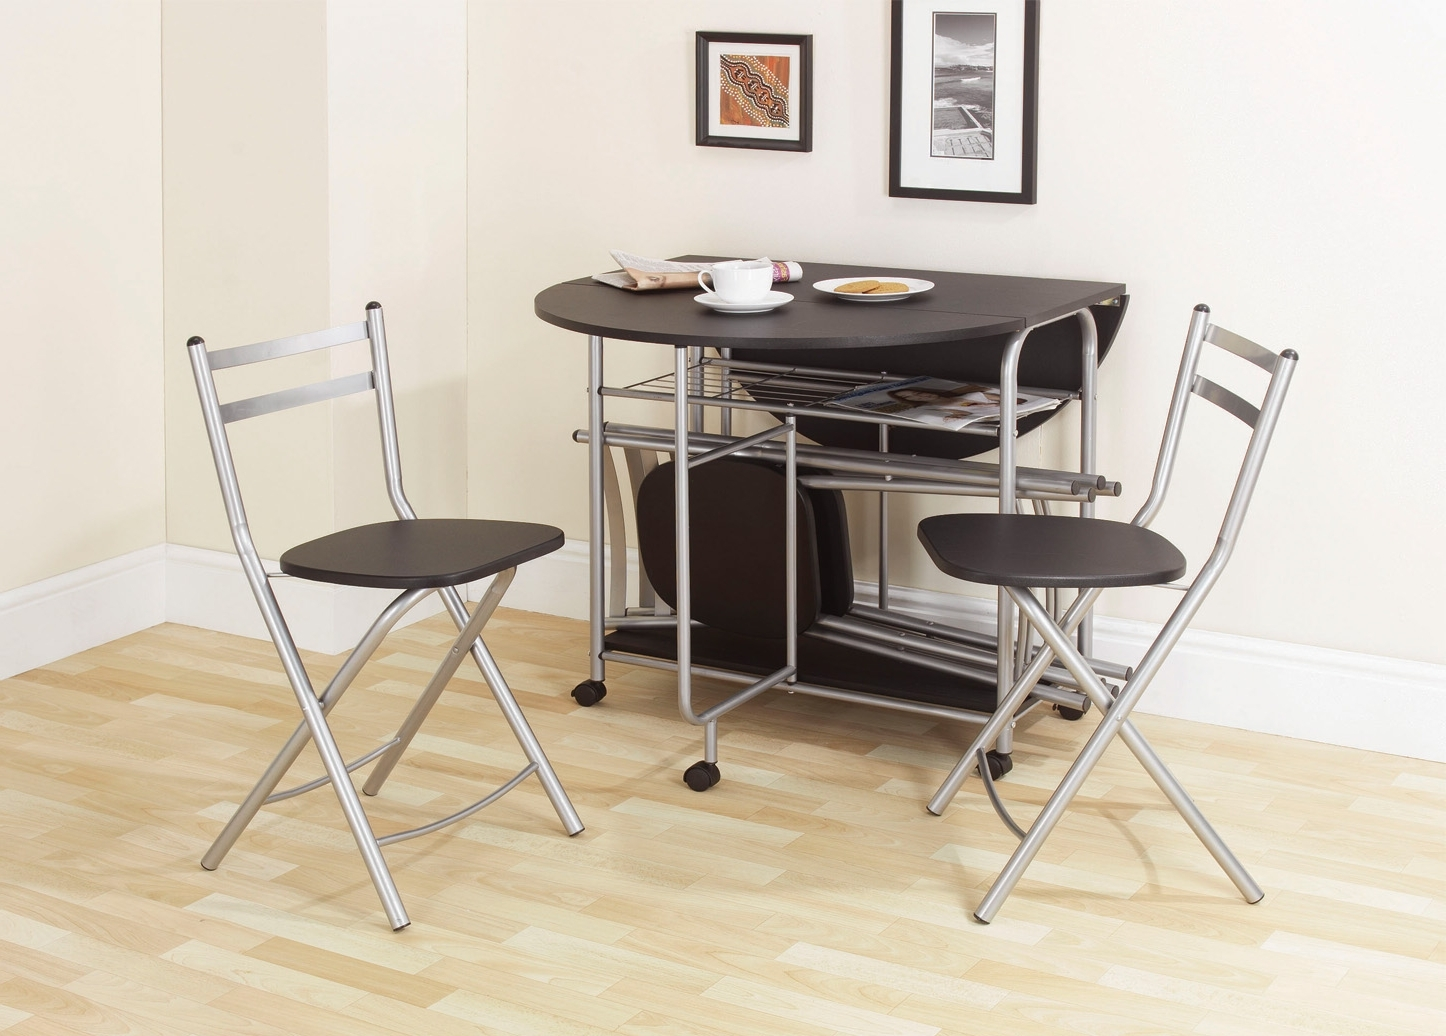 Stowaway Dining Tables And Chairs For Well Liked Stowaway Dining Set Black –  (View 18 of 25)